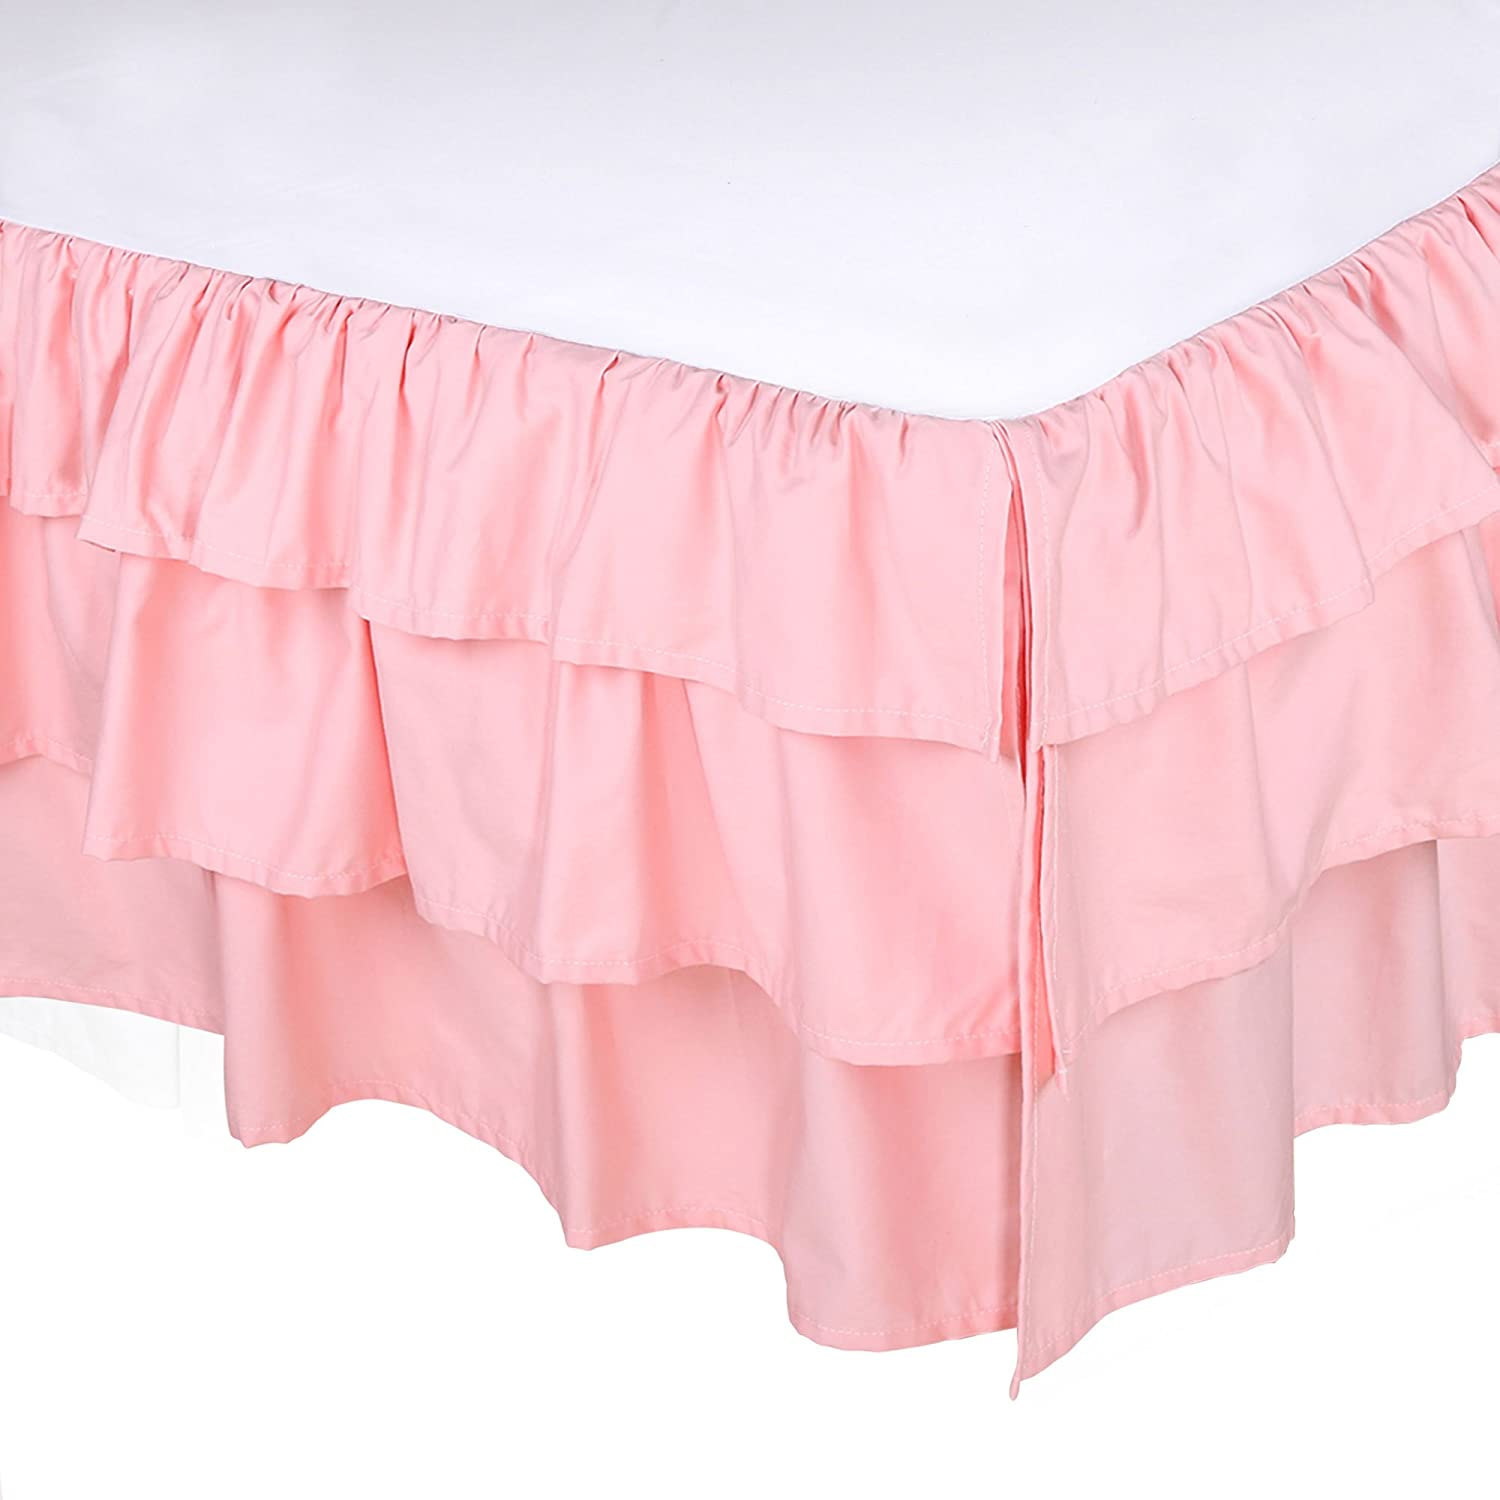 Coral Pink Three Layered Crib Dust Ruffle by The Peanut Shell Farallon Brands DRLSDLC